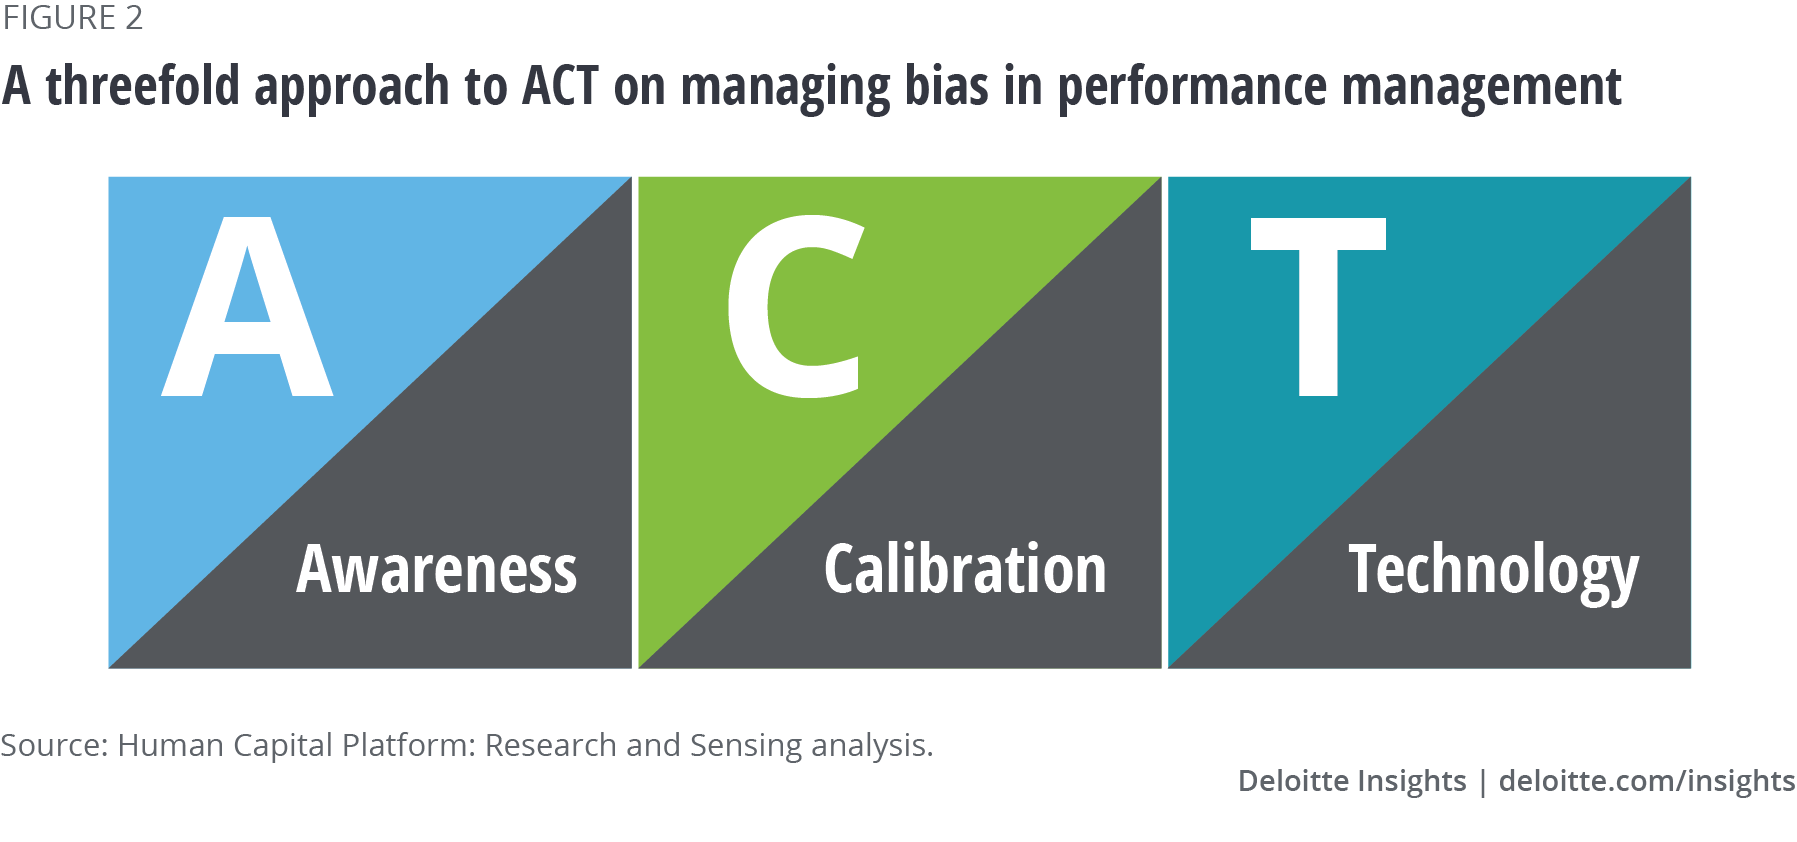 A threefold approach to ACT on bias in performance management